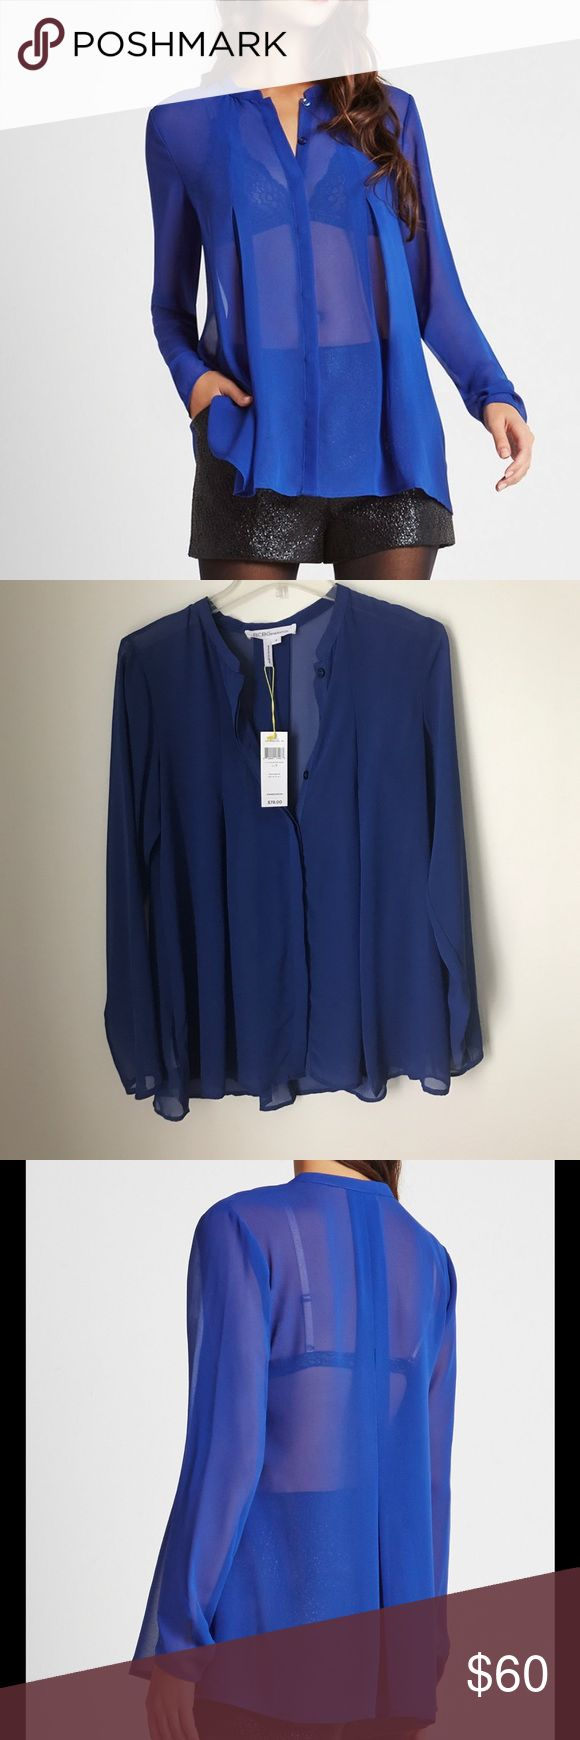 BCBGeneration Electric Blue Sheer Top NWT. Gorgeous top! Perfect for night out on the town. Stock photos from BCBG website BCBGeneration Tops